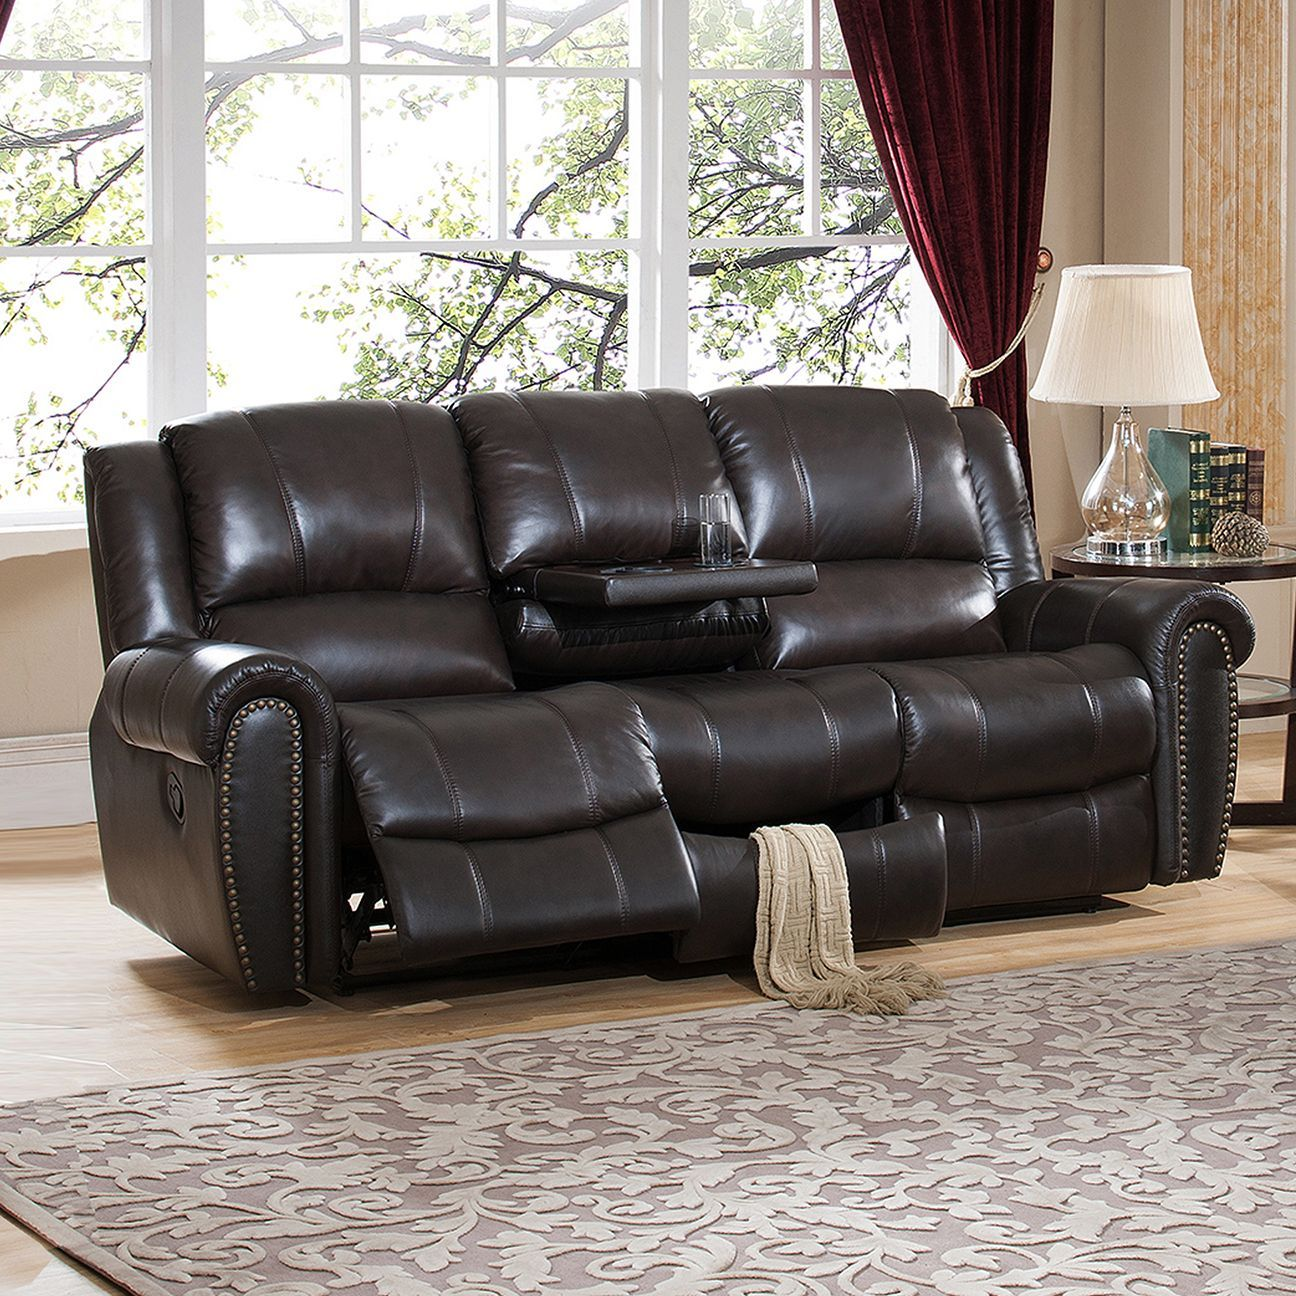 Amax Charlotte Top Grain Leather Reclining Sofa With Memory Storage Drawer And Pull Out Tray Table